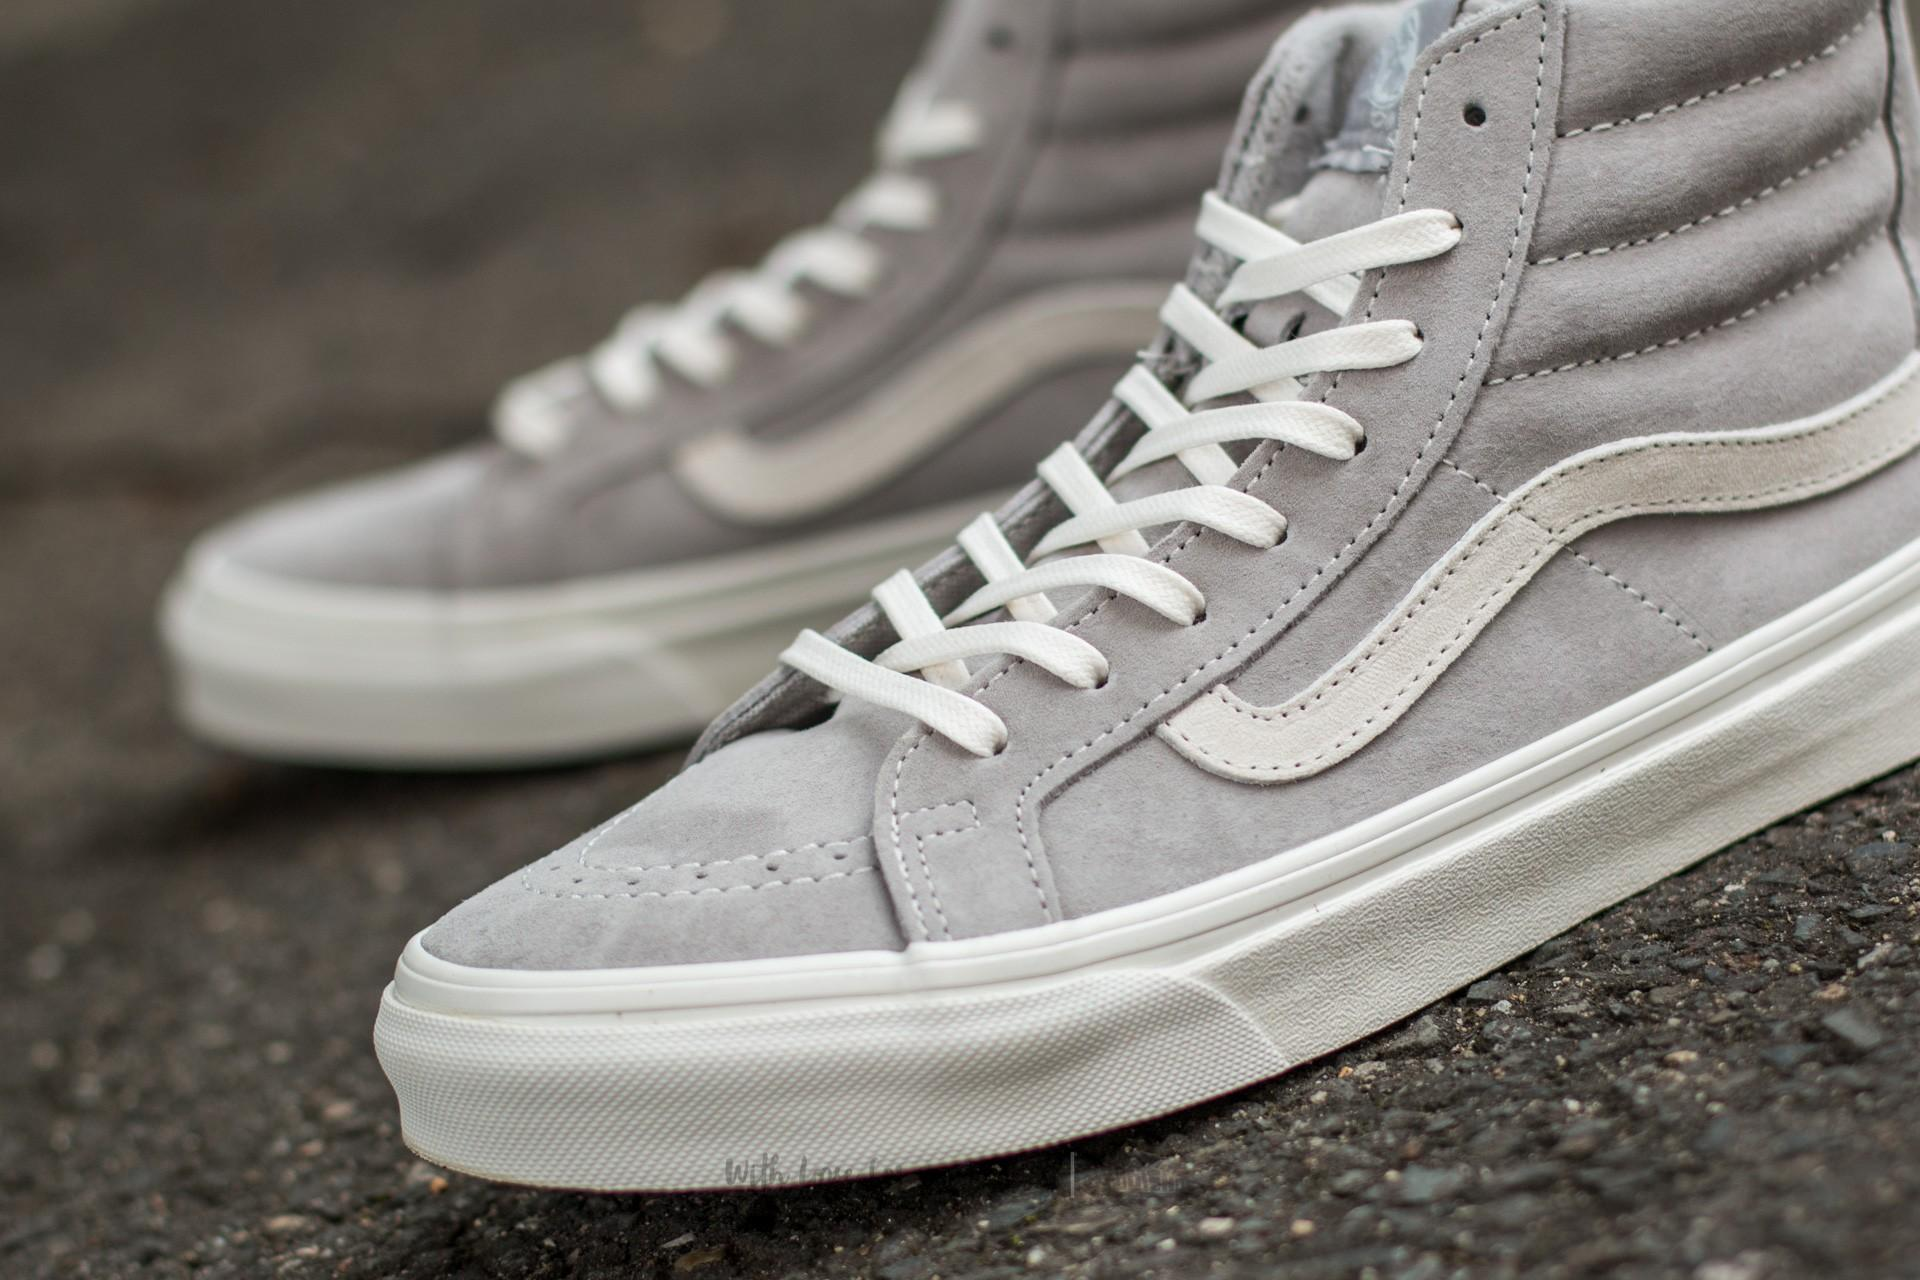 f9b31511ce Lyst - Vans Sk8-hi Slim Zip (scotchgard) Cool Grey  Blanc in Gray